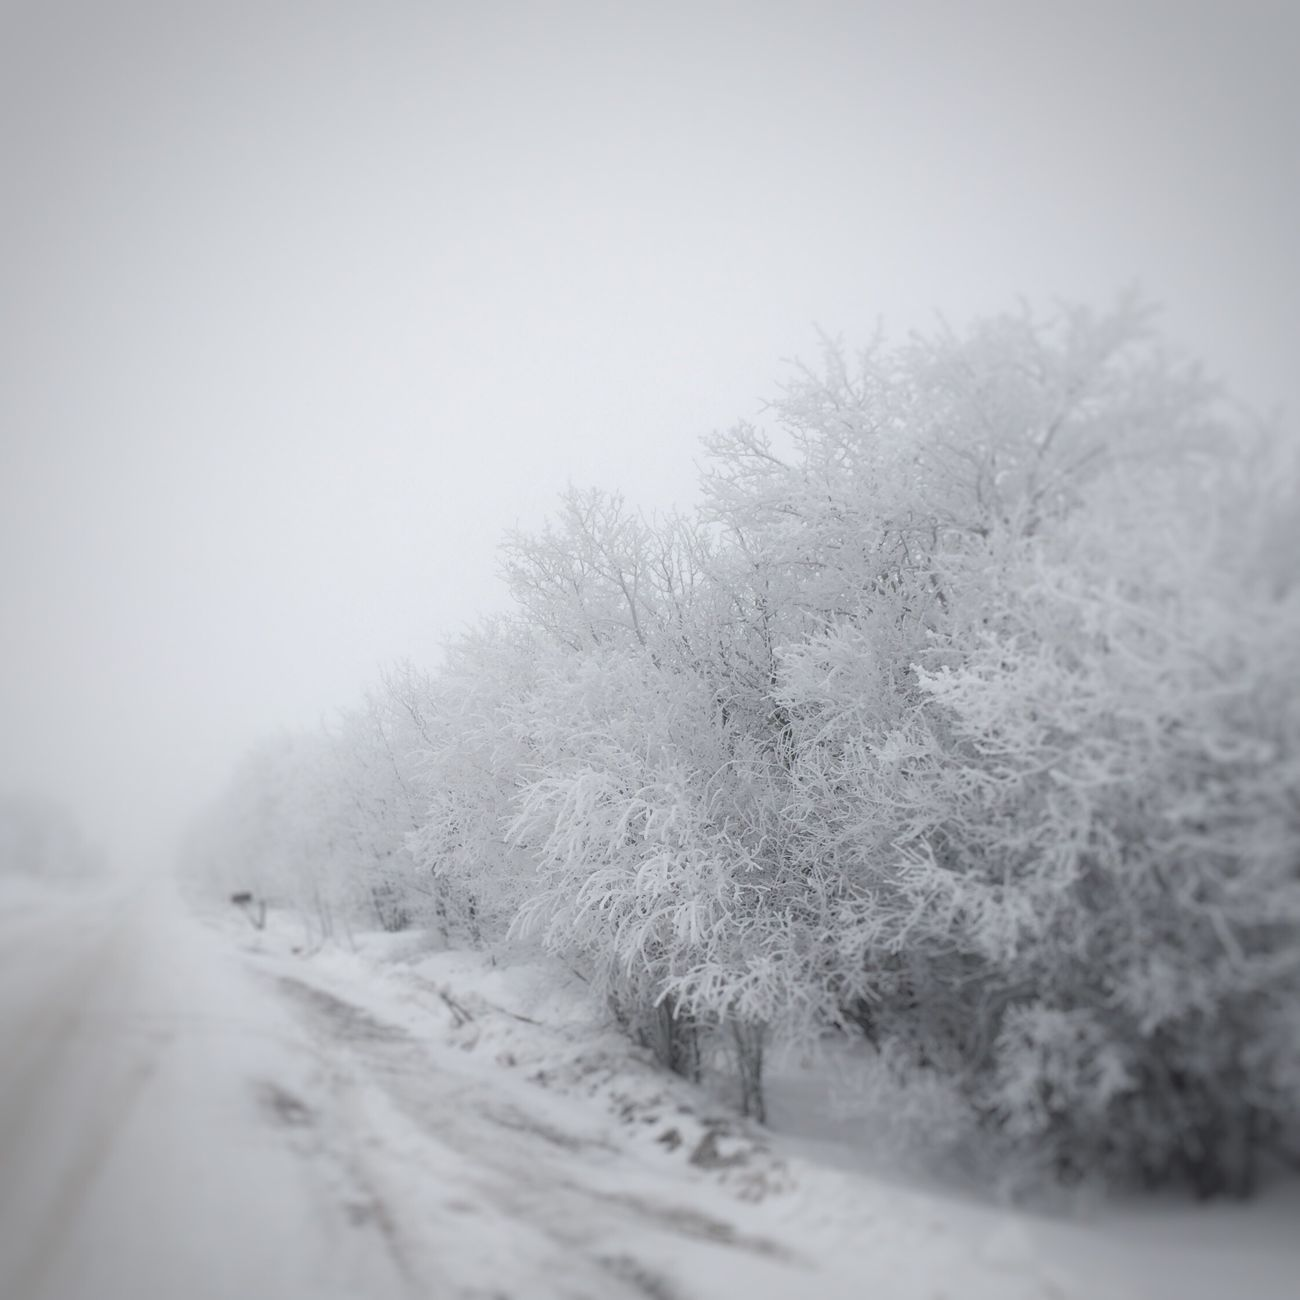 Taking the backroads on a frosty winter's day. Snow Winter White Color Foggy Tranquility